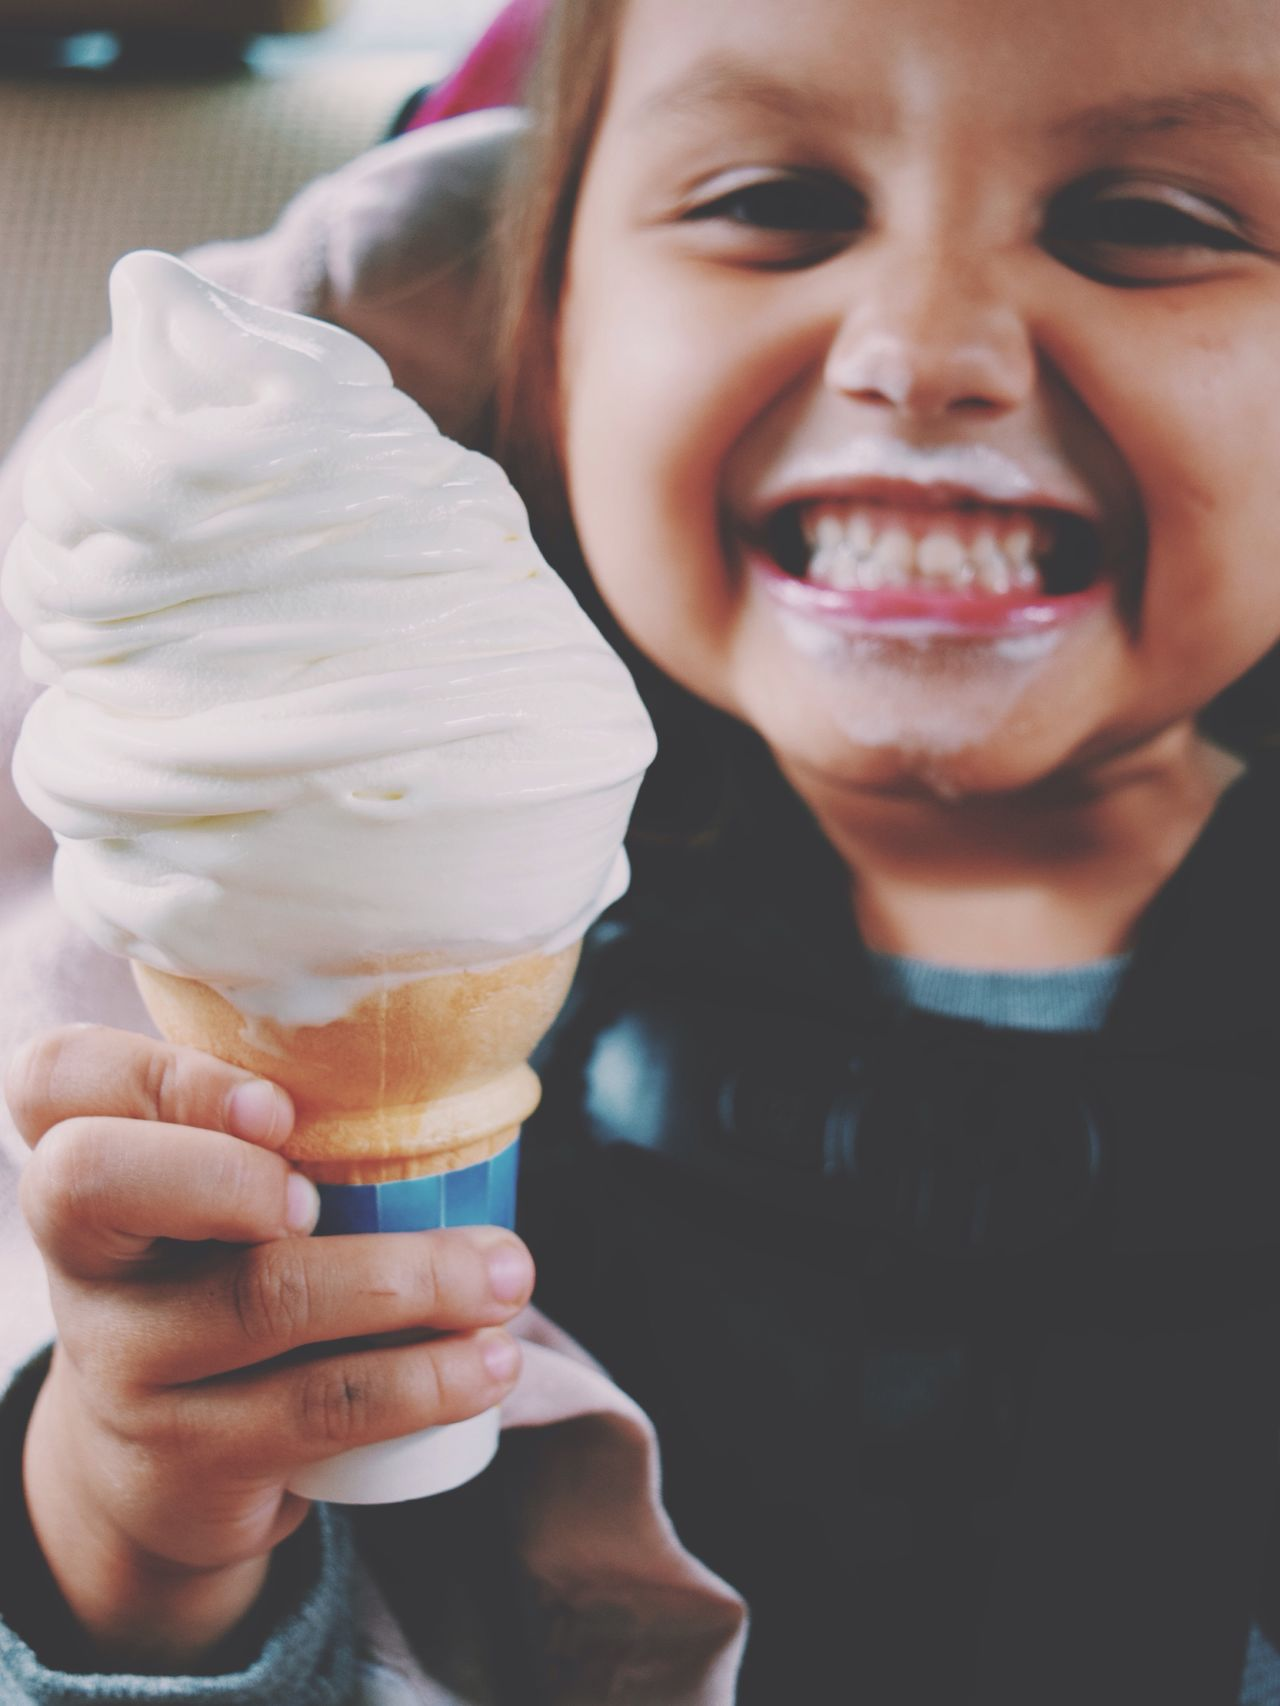 Ice Cream Icecream Food Happy Yummy Expression Face Dirty Kids Being Kids Children Kids Child Childhood Kid Happiness CarRides Closeup Daughter Girl Messyface Fun Cheese! Eating Enjoying Life Show Us Your Takeaway!